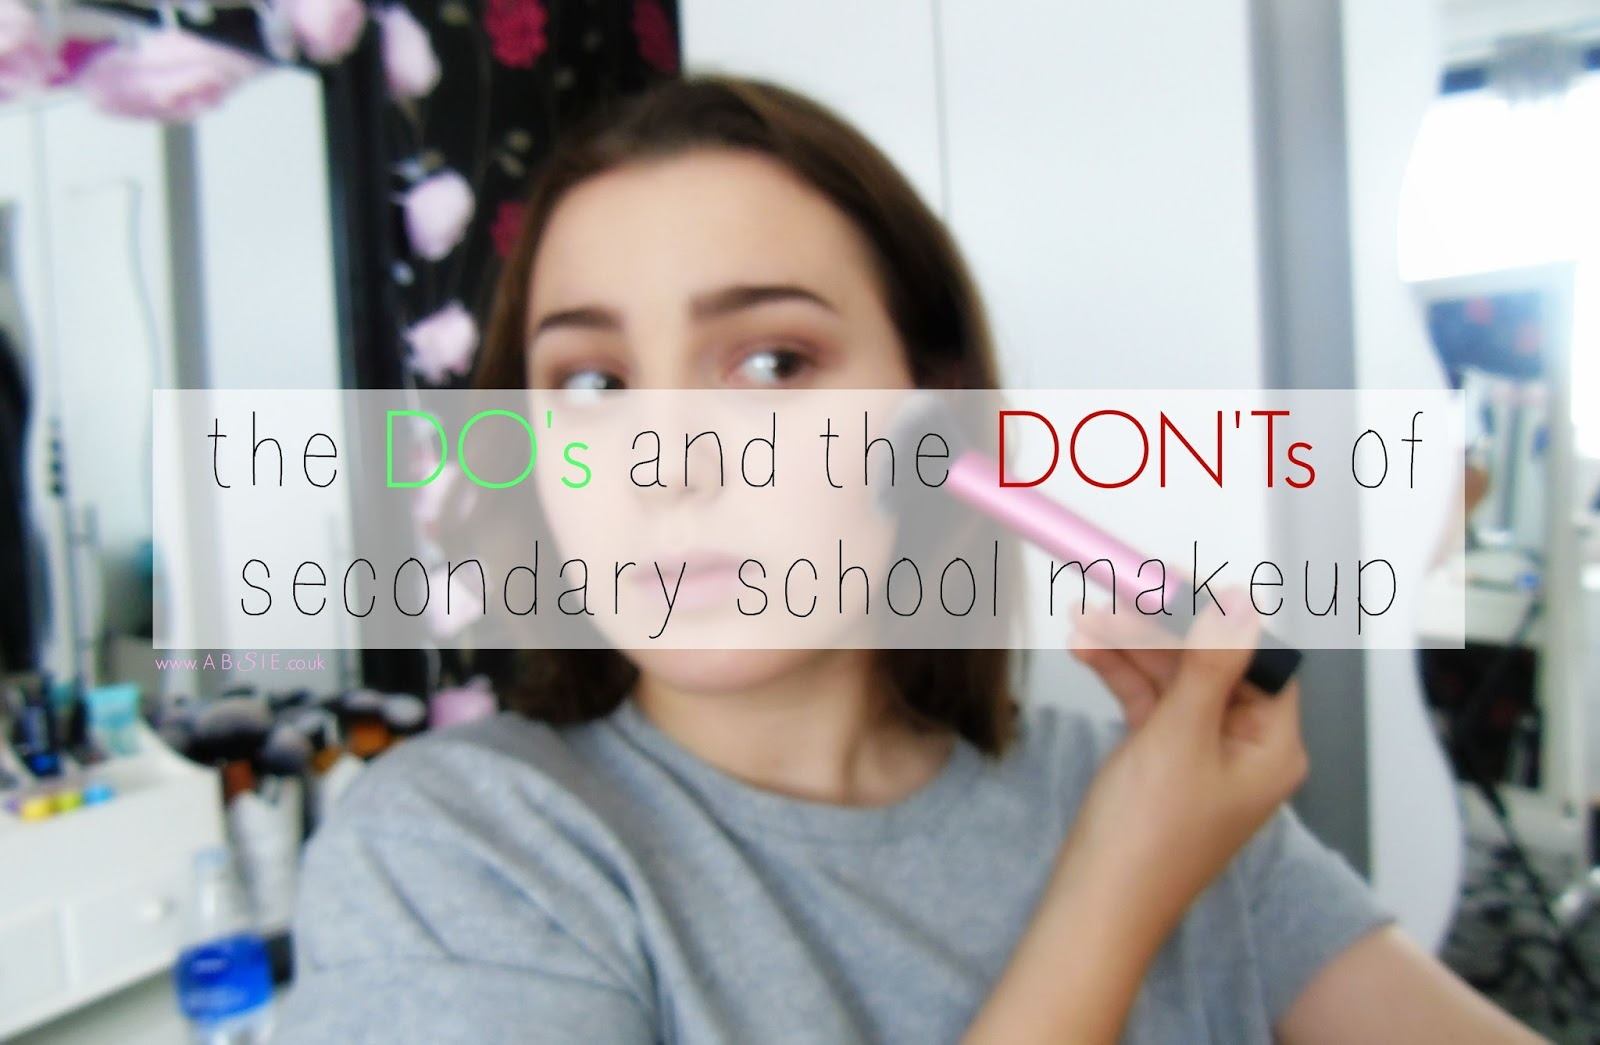 www.absie.co.uk | The DO's and DON'Ts of Secondary School Makeup